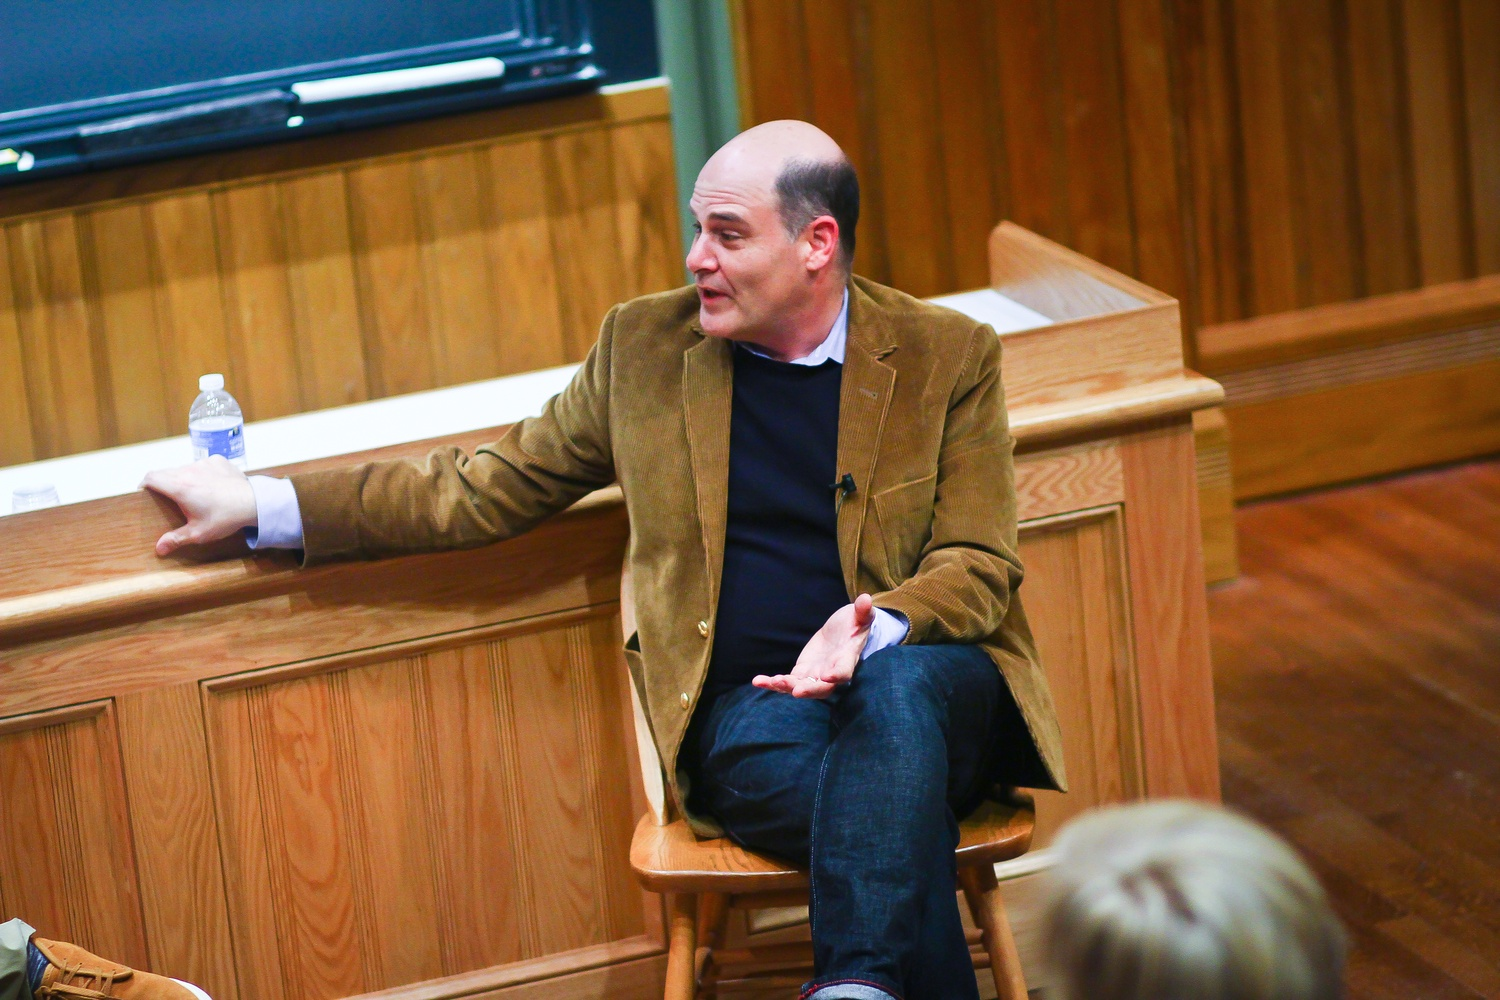 Matthew Weiner, creator of the AMC drama series Mad Men, discusses his techniques and experiences working in television as part of Harvard LITFest Monday evening.